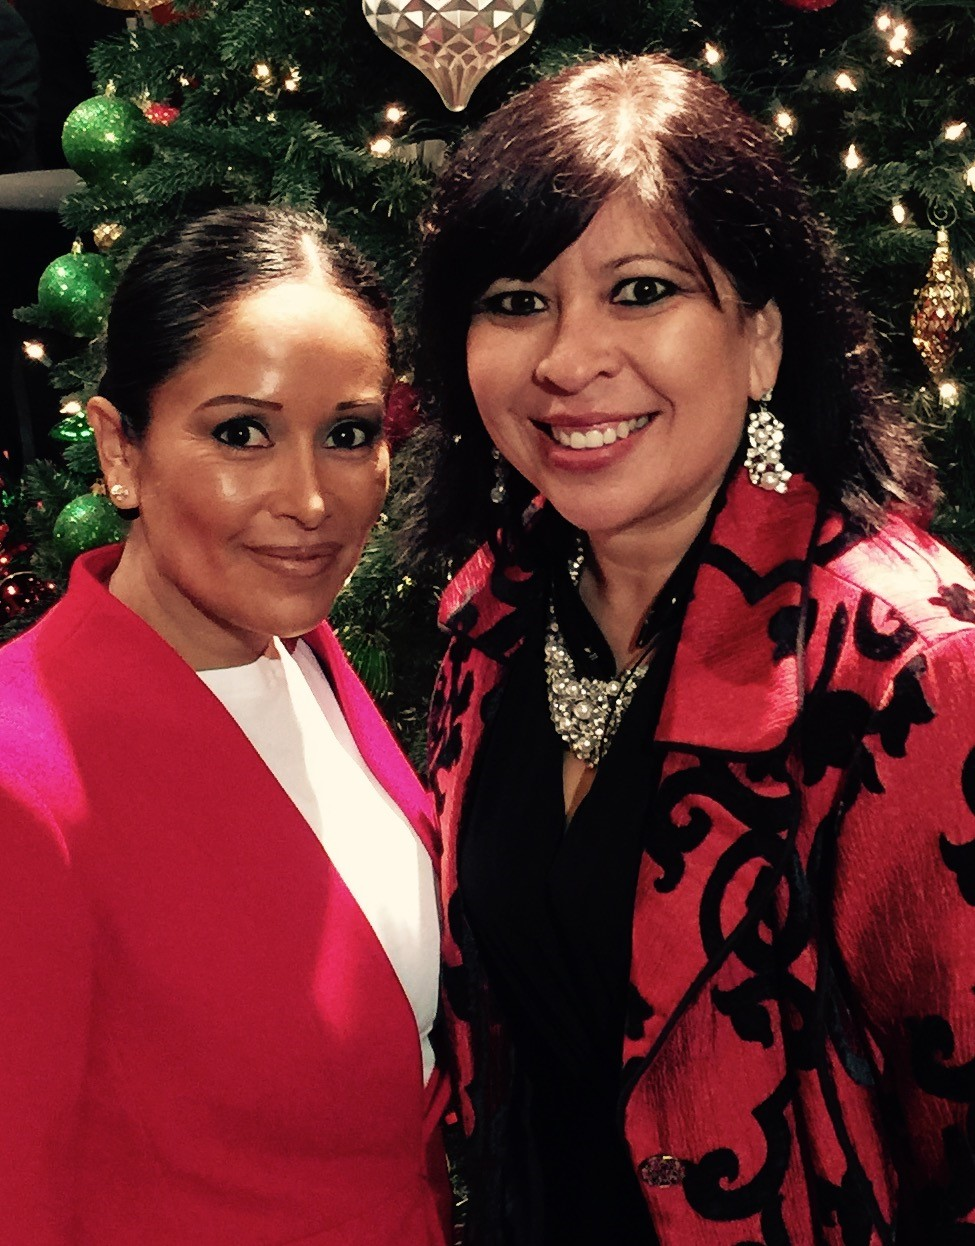 Melissa Rascon @ Holiday Networking Event for National Hispanic Professional Organization (NHPO)